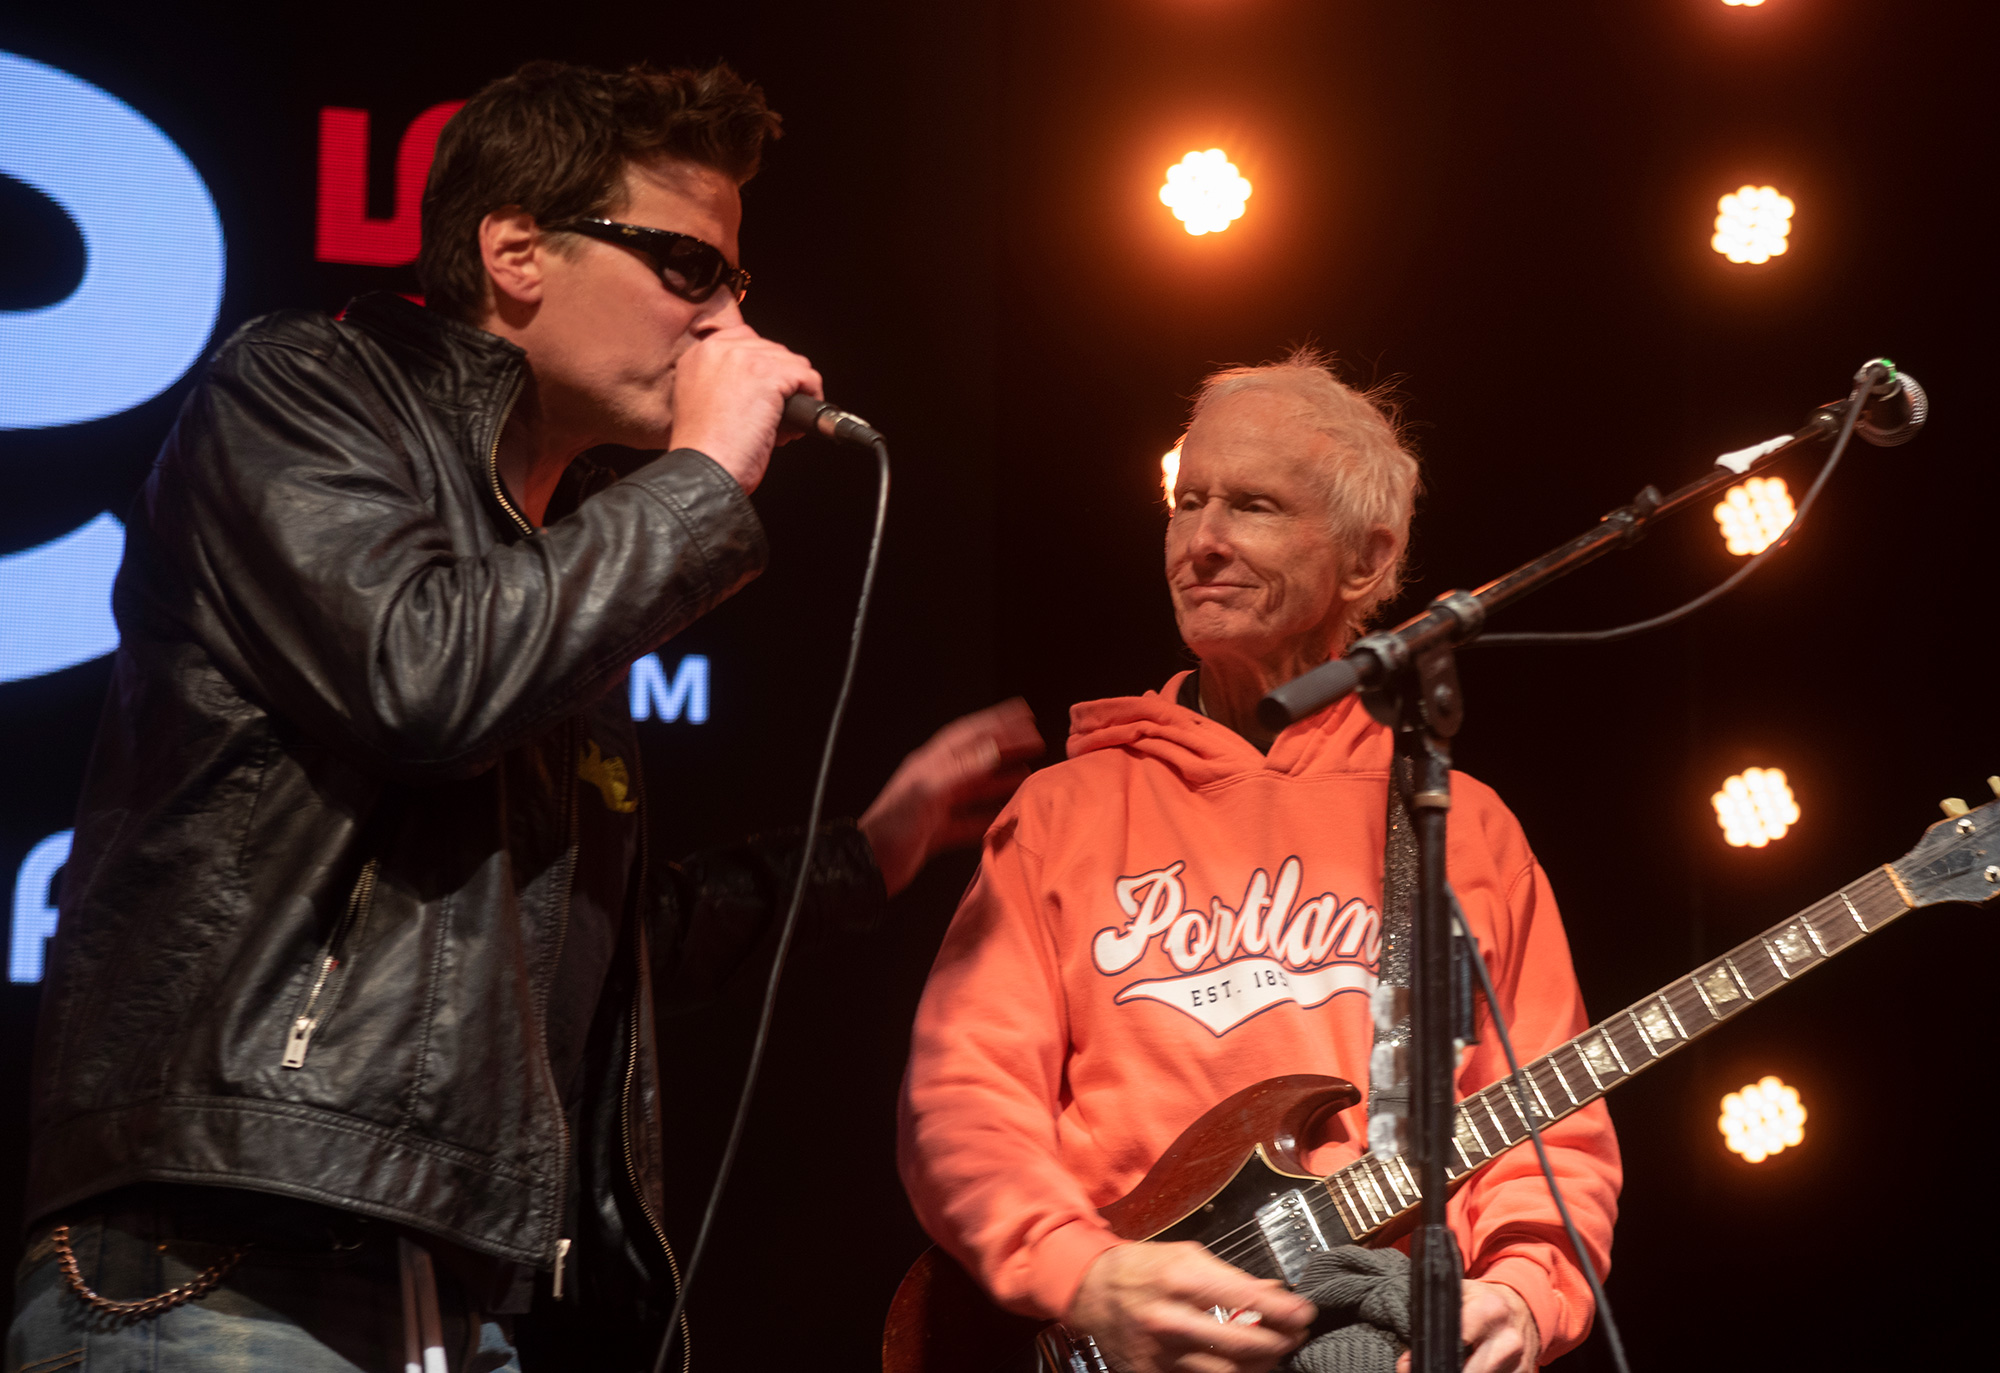 Robby Krieger performing with his son, Waylon Krieger, 2018